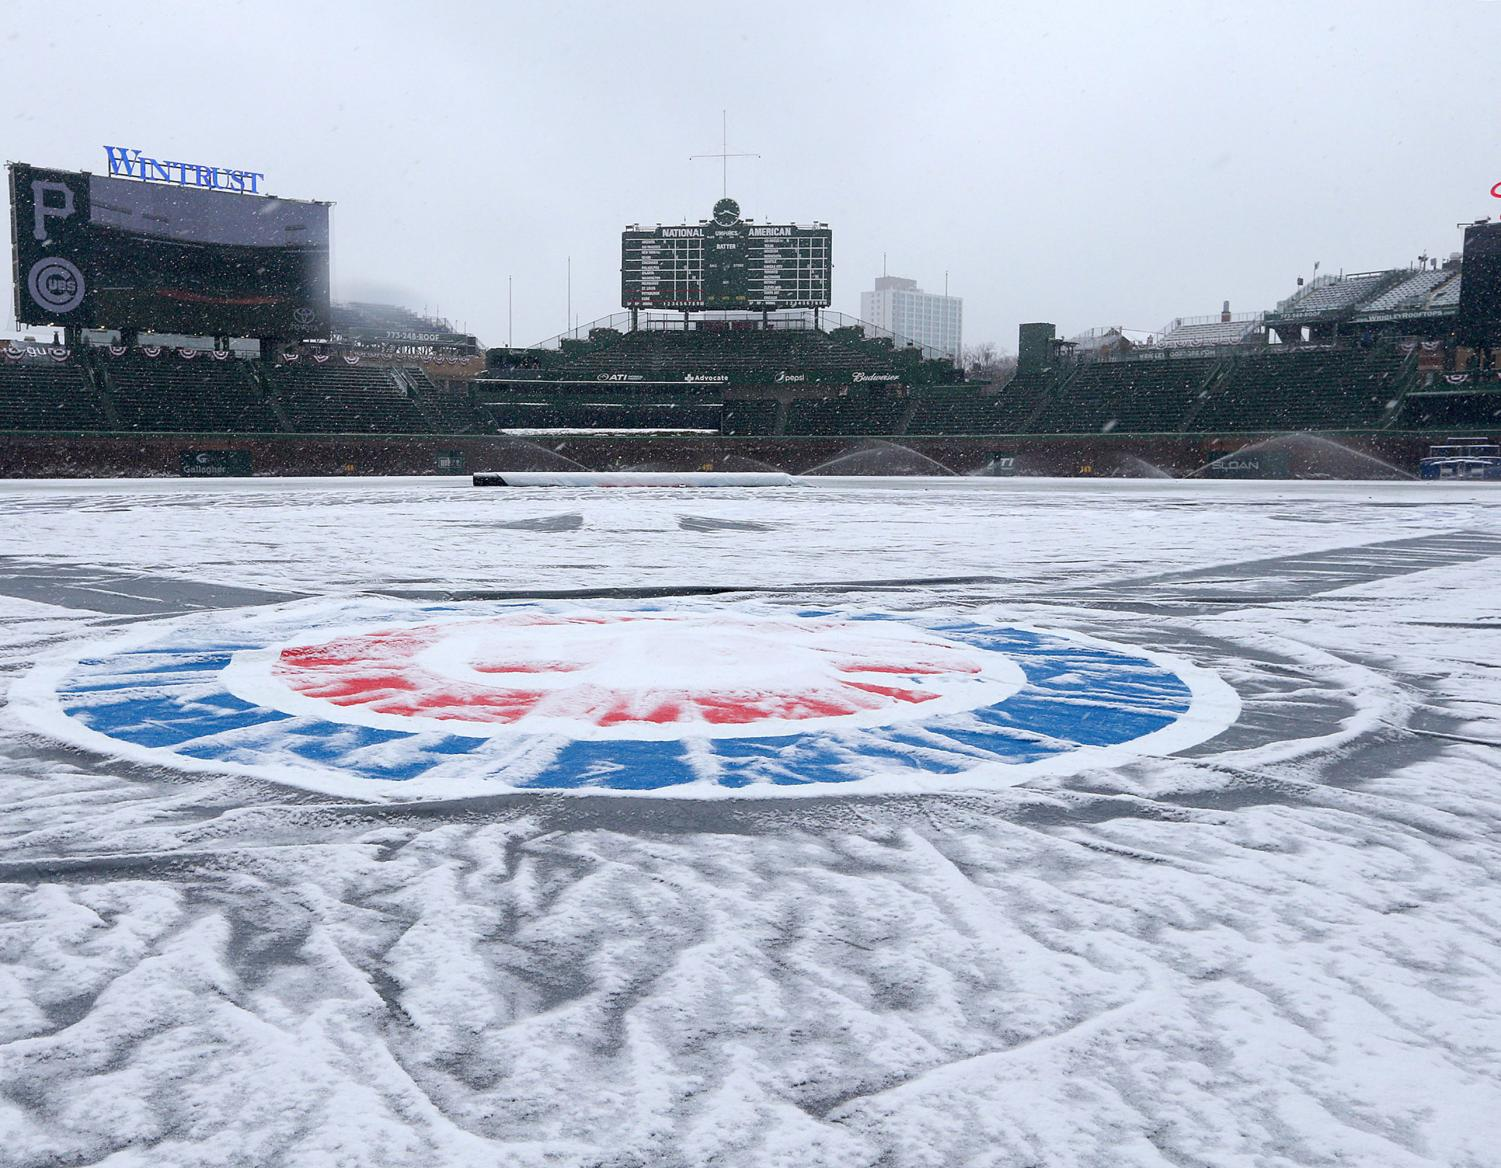 Late winter weather in the Midwest has forced several games to be postponed to later dates in the season. With the high number of rescheduled games, it raises the question, do we play too much baseball?